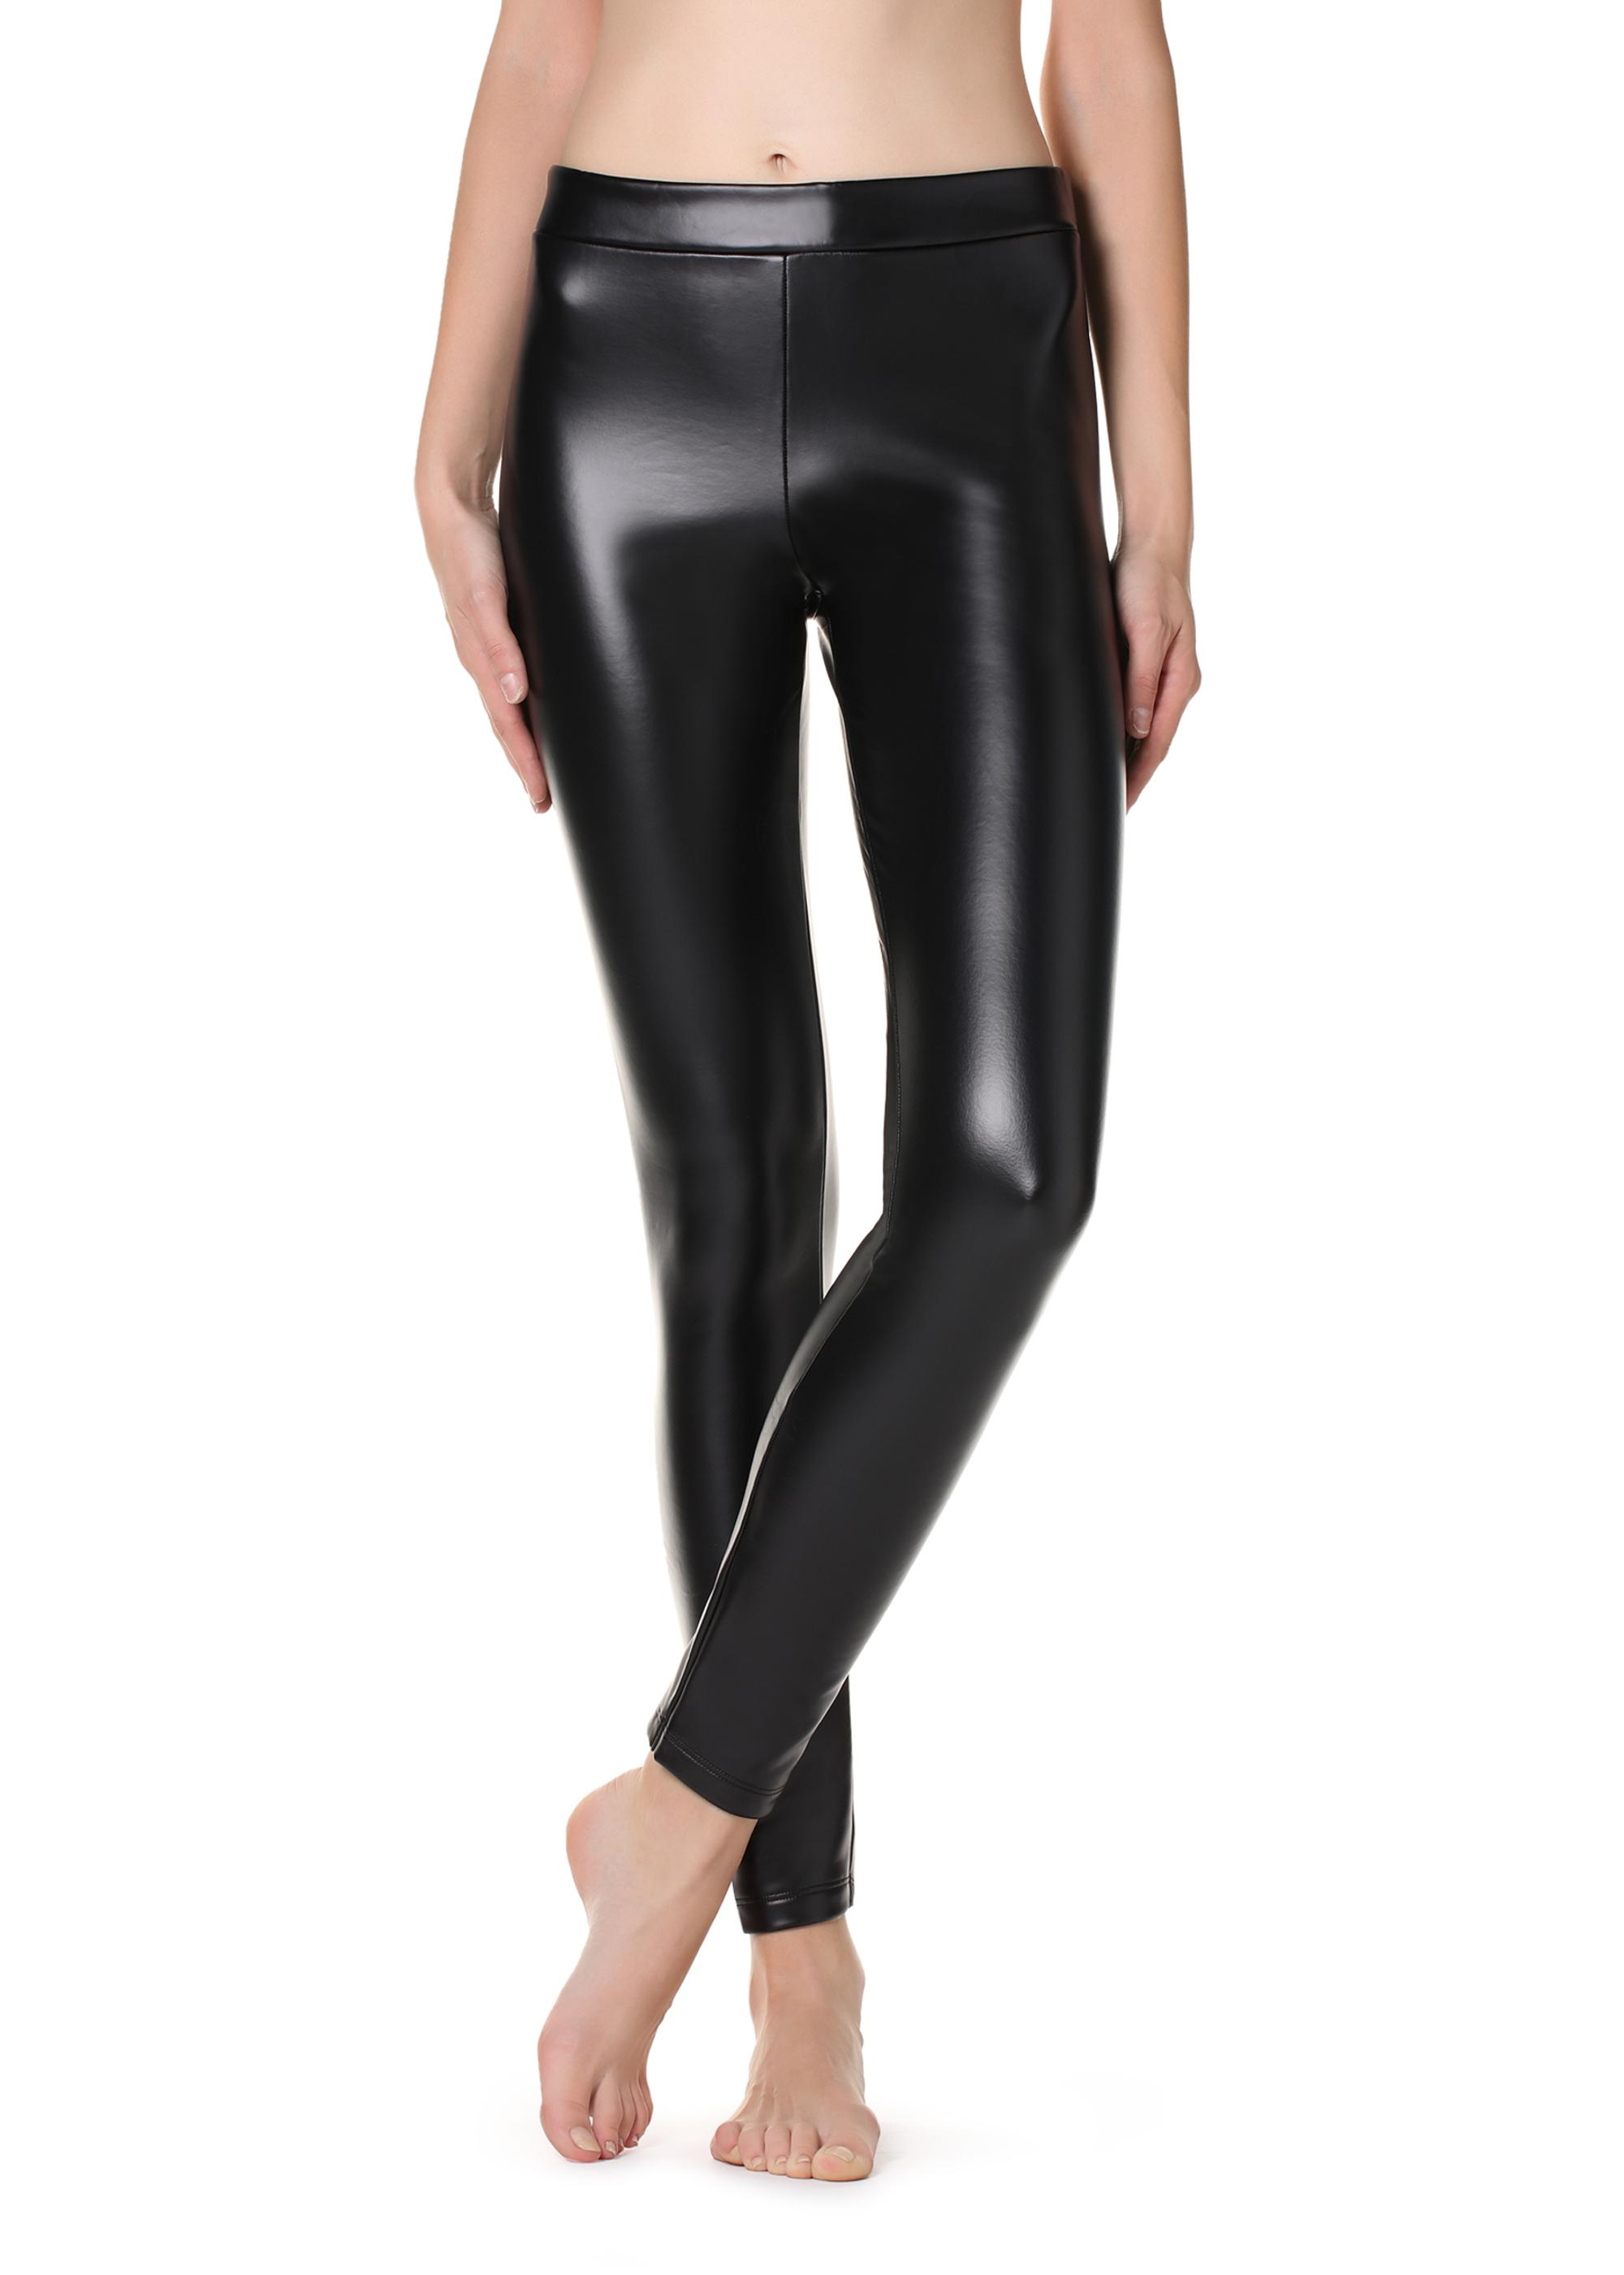 2732aed3ec0ff7 Thermal leather-effect leggings - Calzedonia